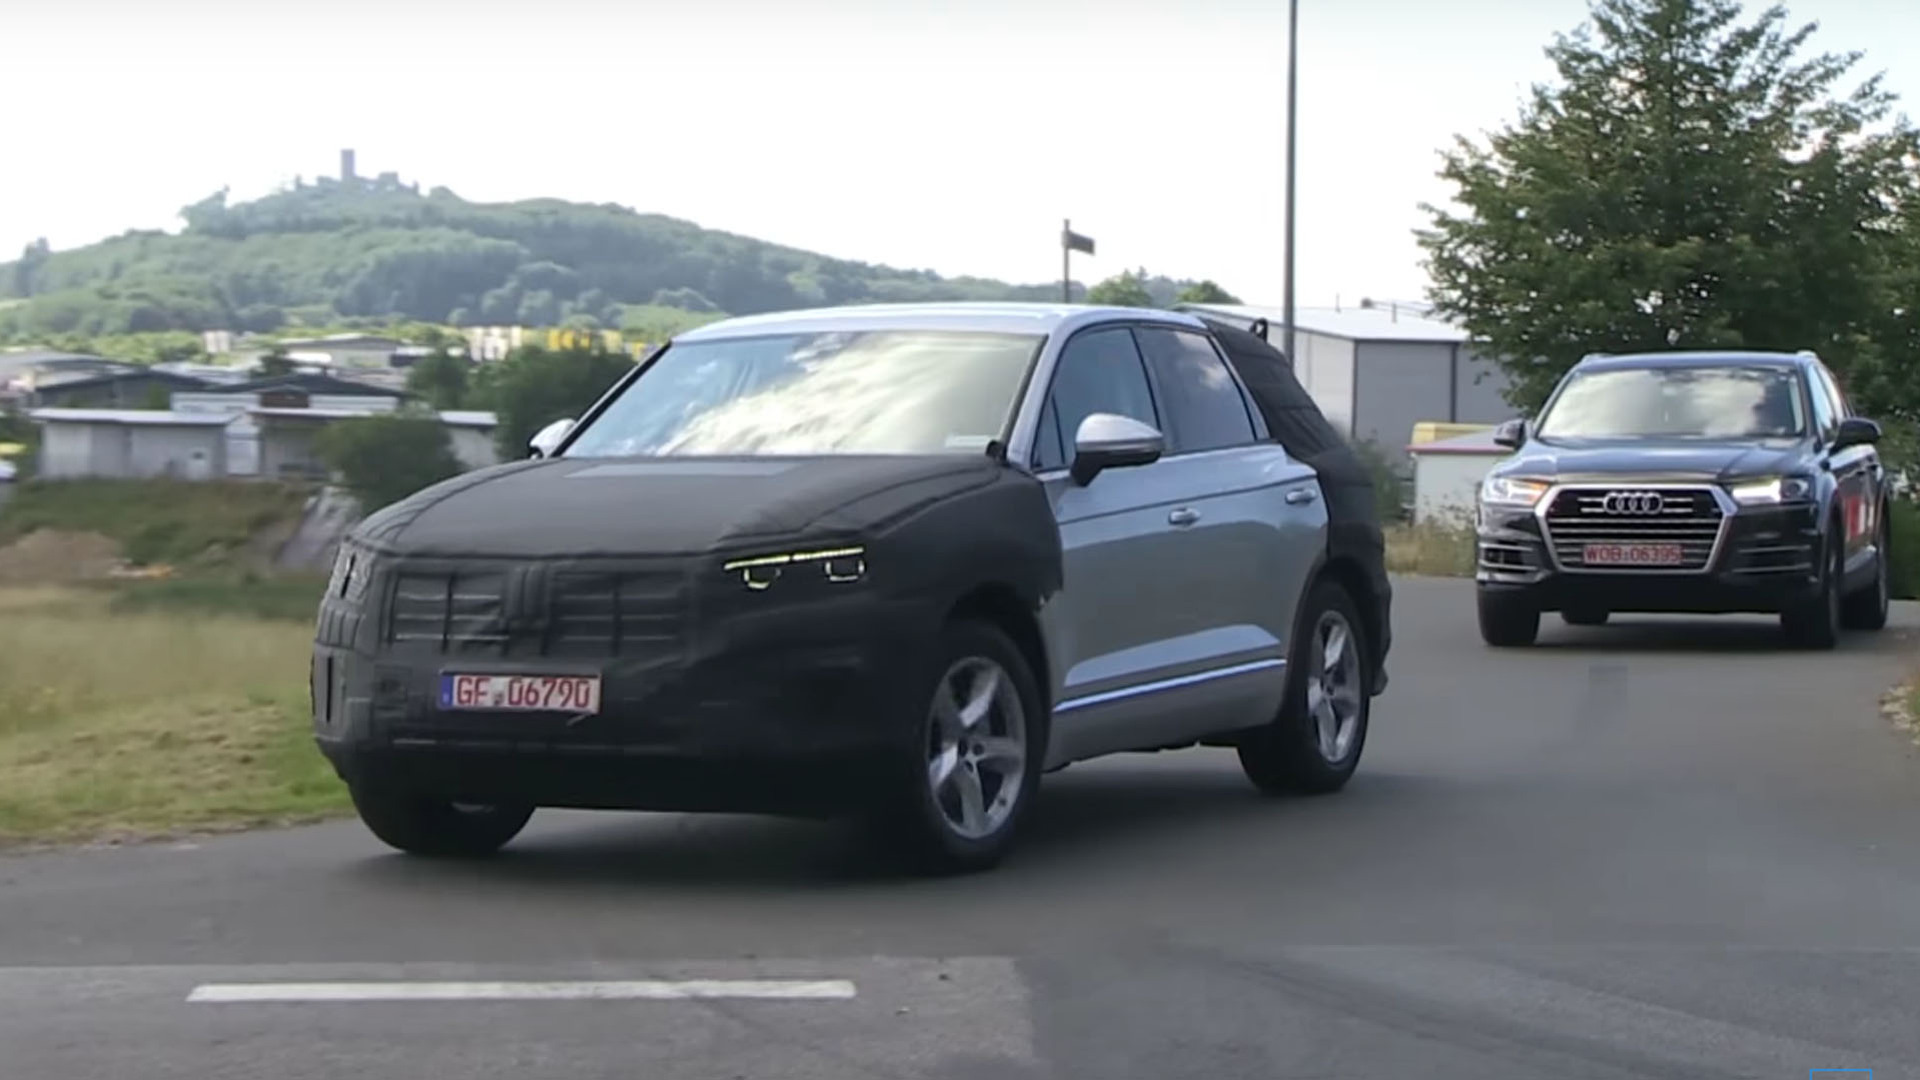 2018 volkswagen touareg shows its chiseled looks on video. Black Bedroom Furniture Sets. Home Design Ideas